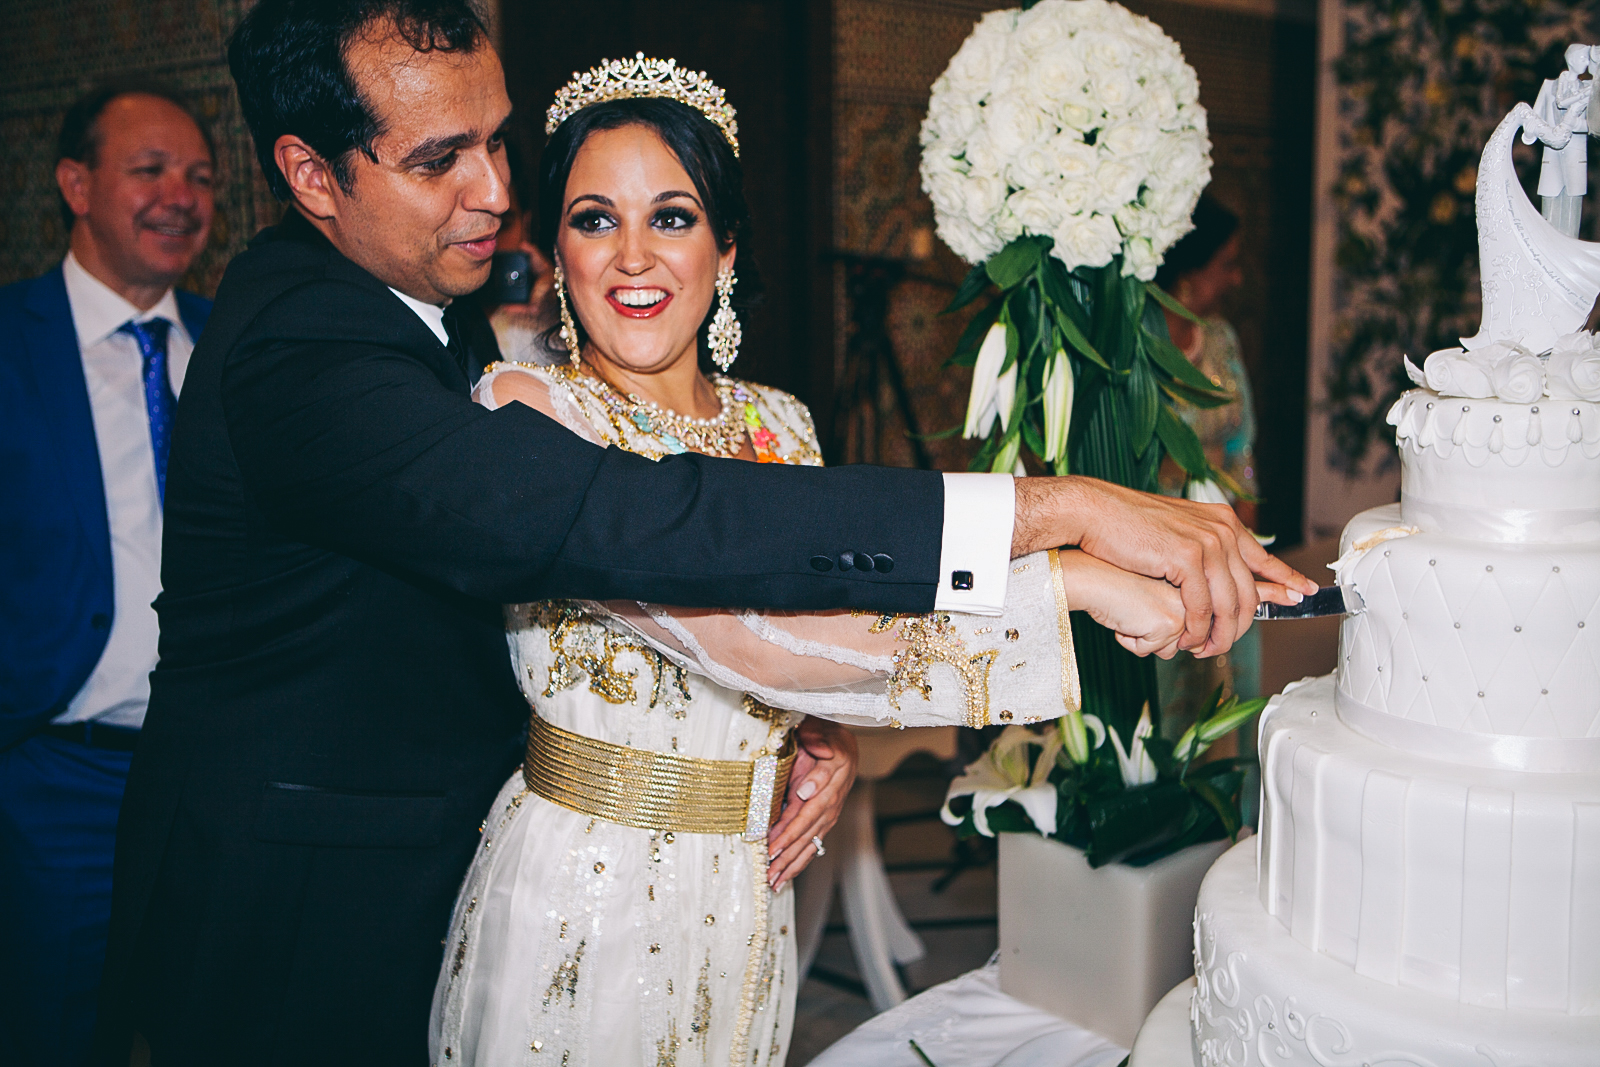 traditional_moroccan_wedding_photographry_casablanca_morocco_houda_vivek_ebony_siovhan_bokeh_photography_175.jpg